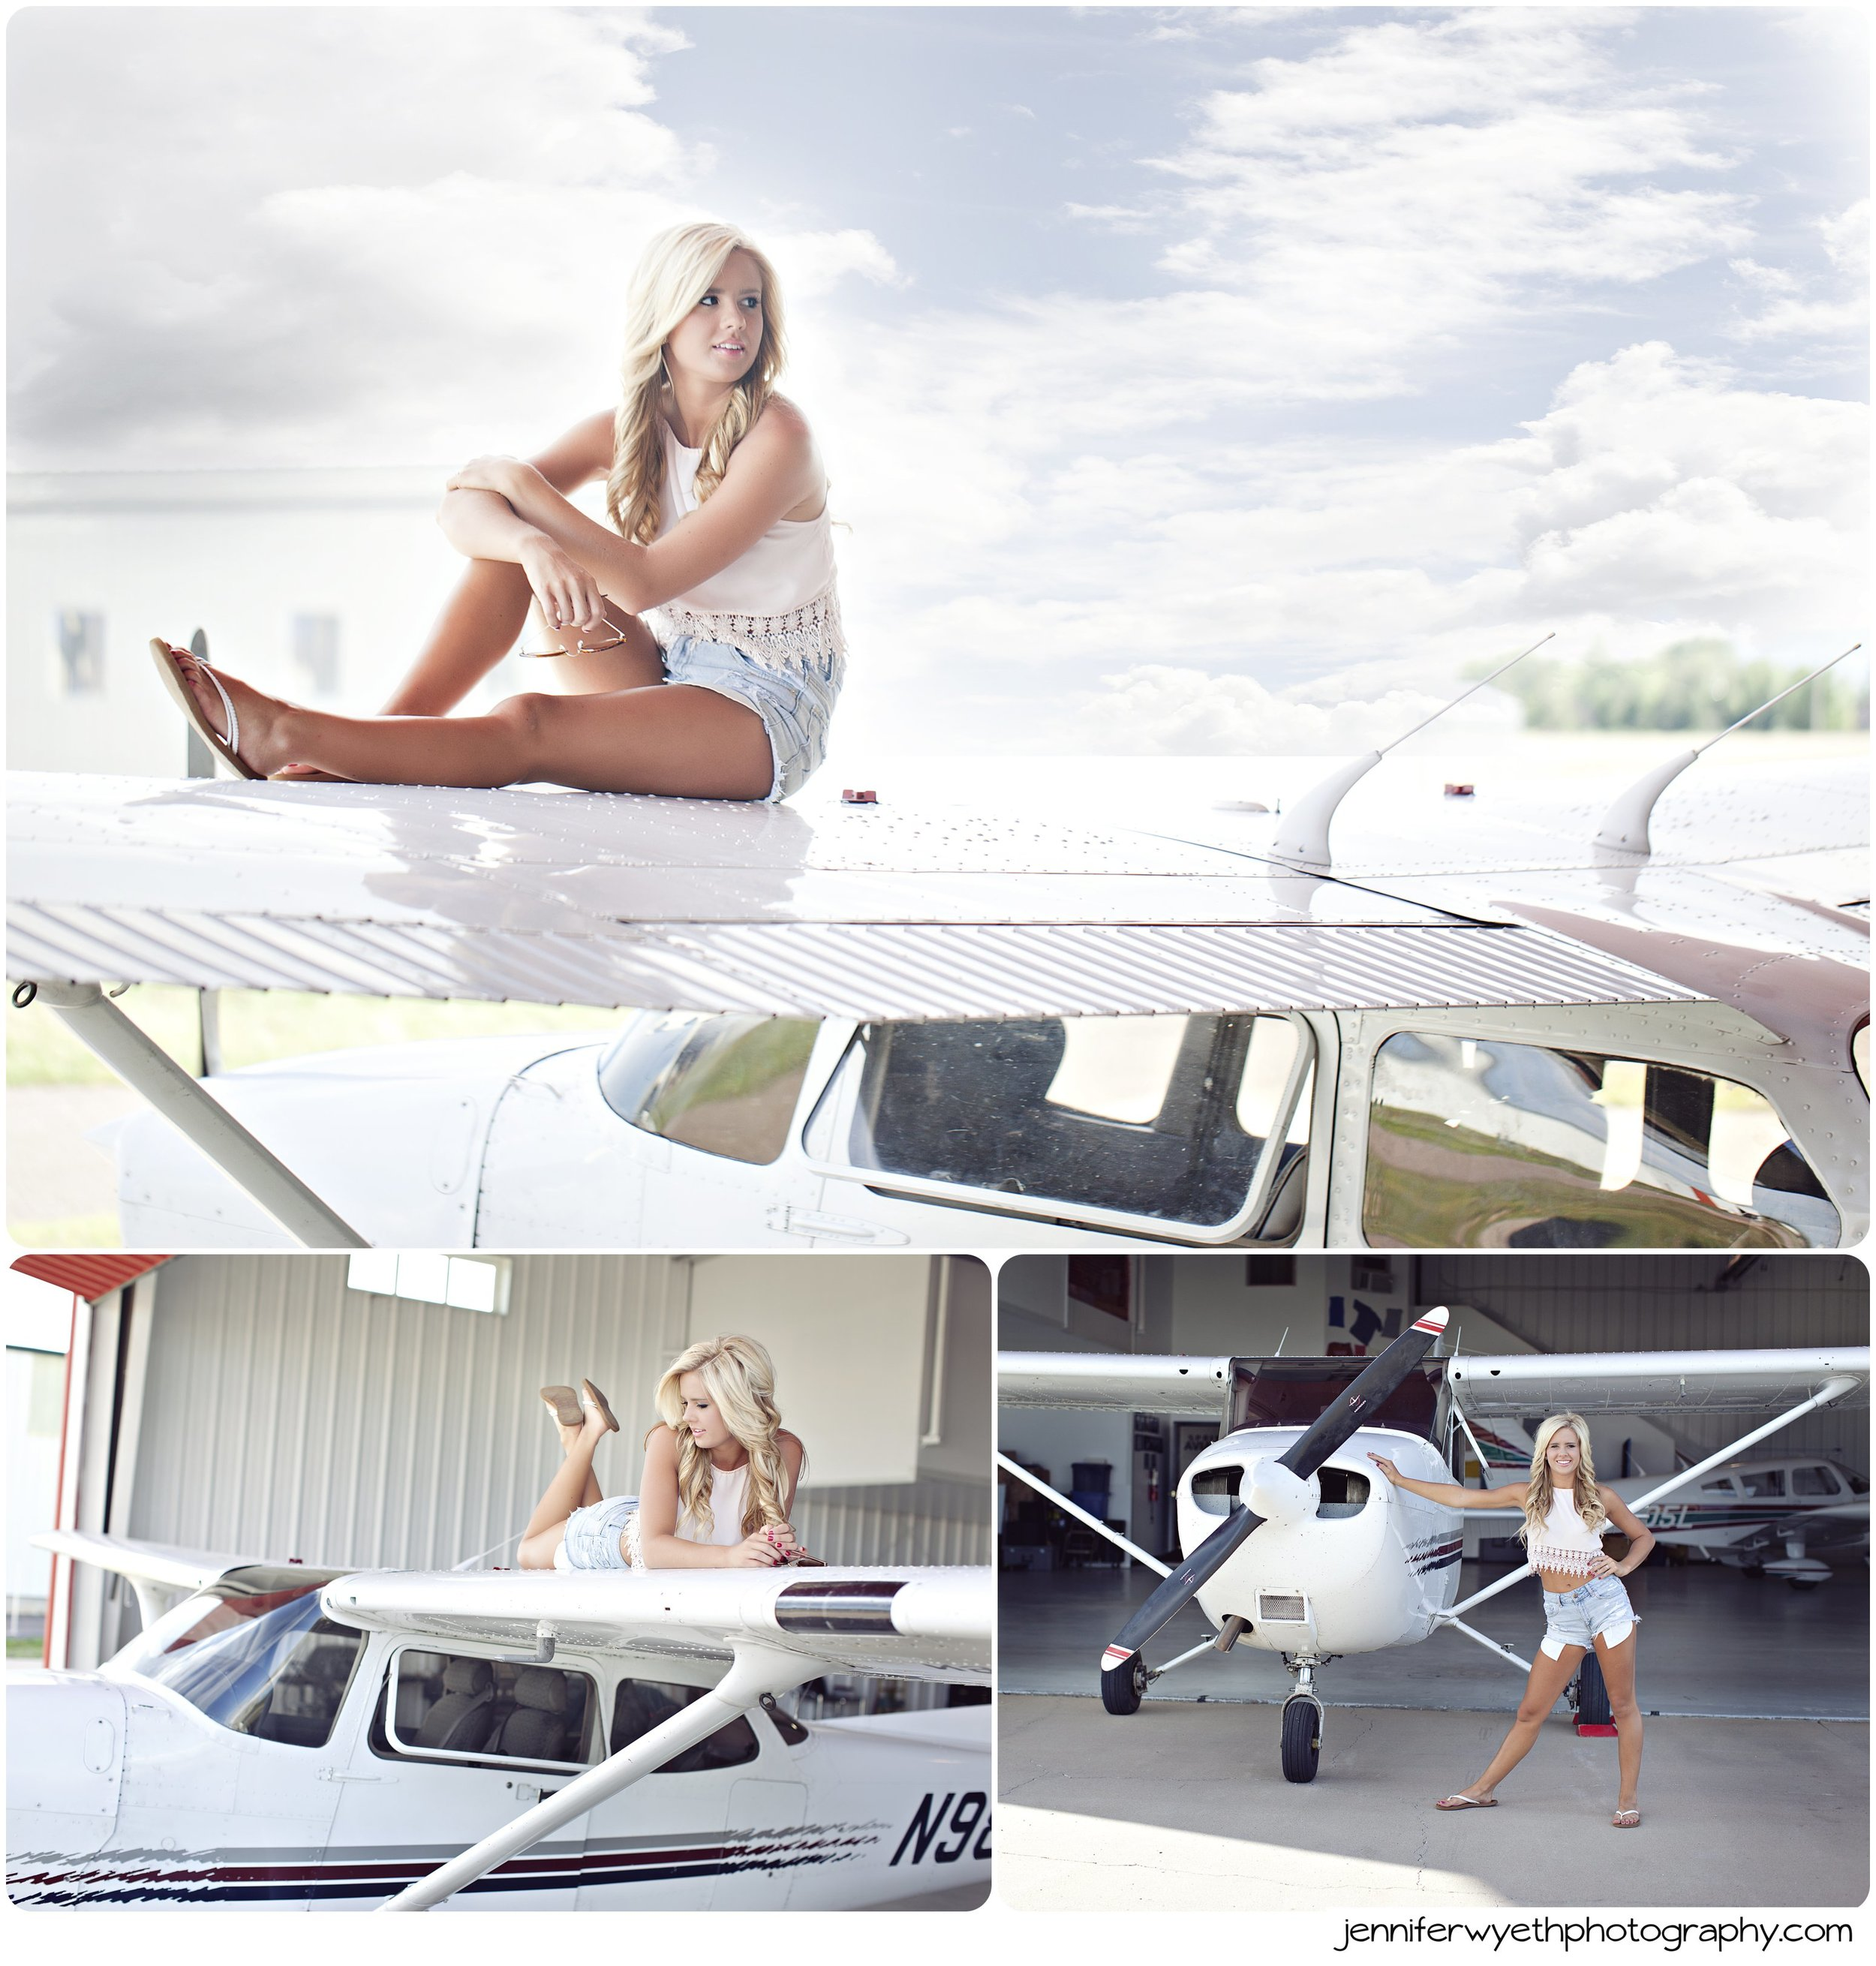 senior girl posing on an airplane wing in airport hanger